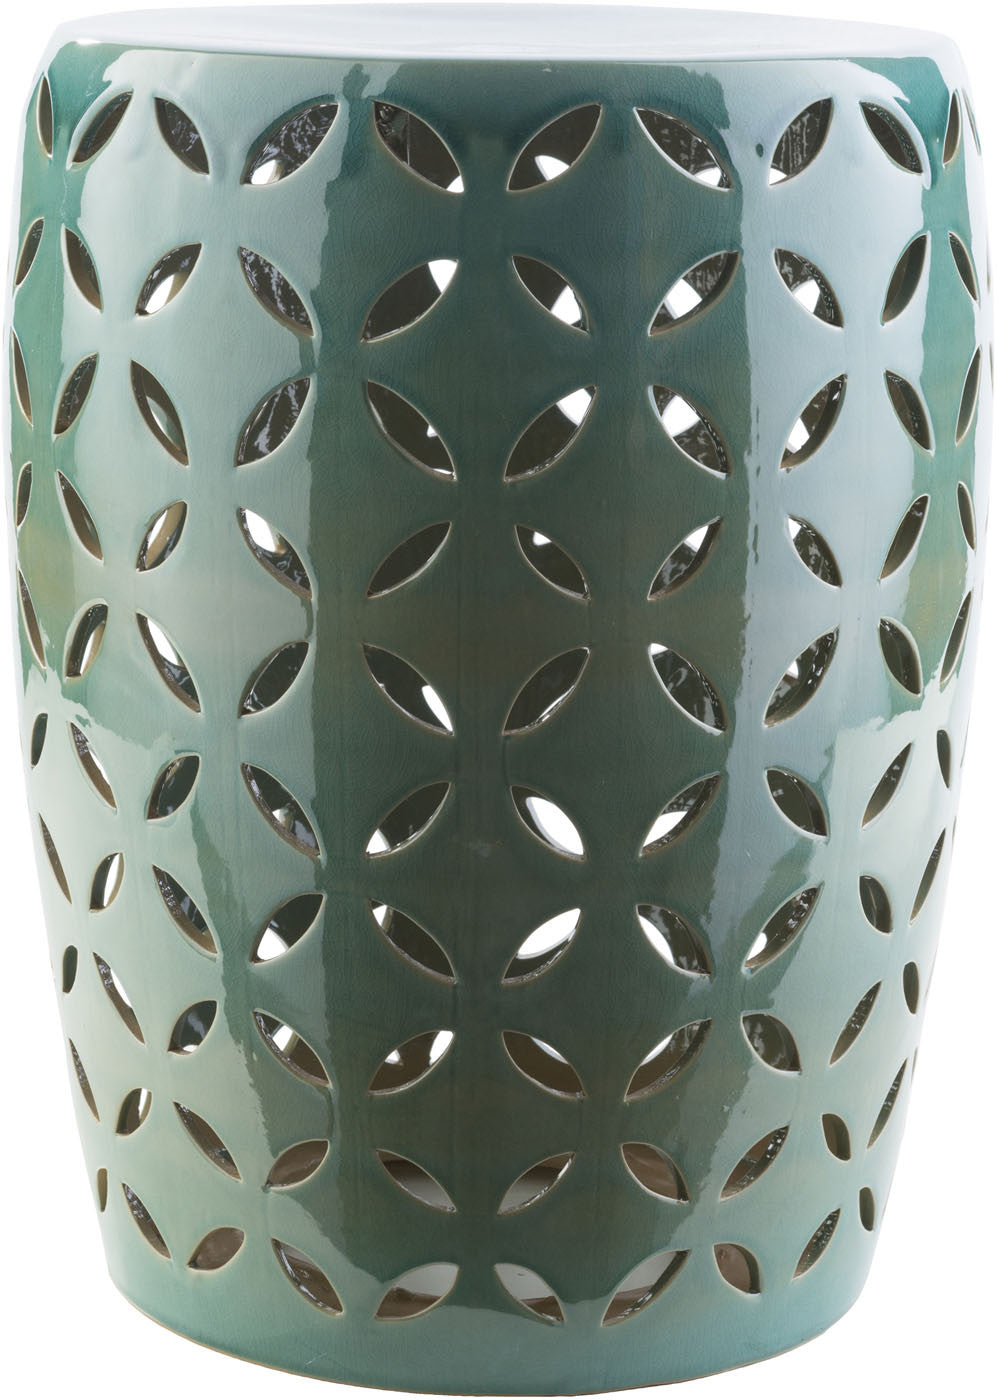 Chantilly Ceramic Stool - Teal CHT761-M by Surya